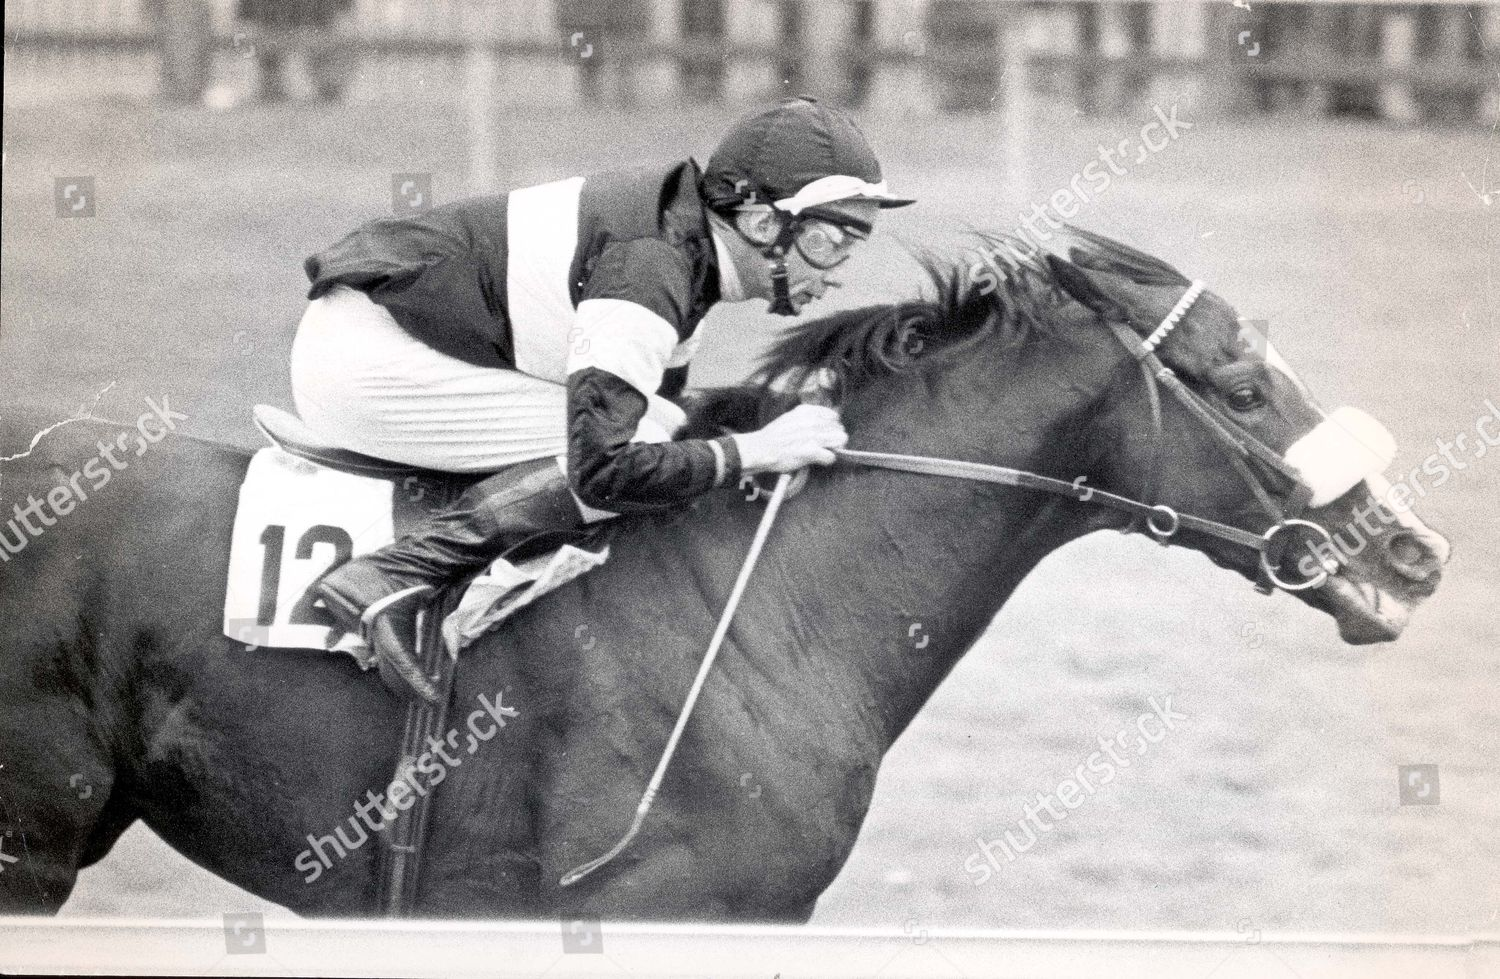 Stock photo of Lester Piggott Jockeys 1974 The Master At Work Lester Piggott Driving Relry Race Home At Newmarket. Relry Race Was The Horse That Led To Break Up Between Henry Cecil And Greville Starkey...jockeys